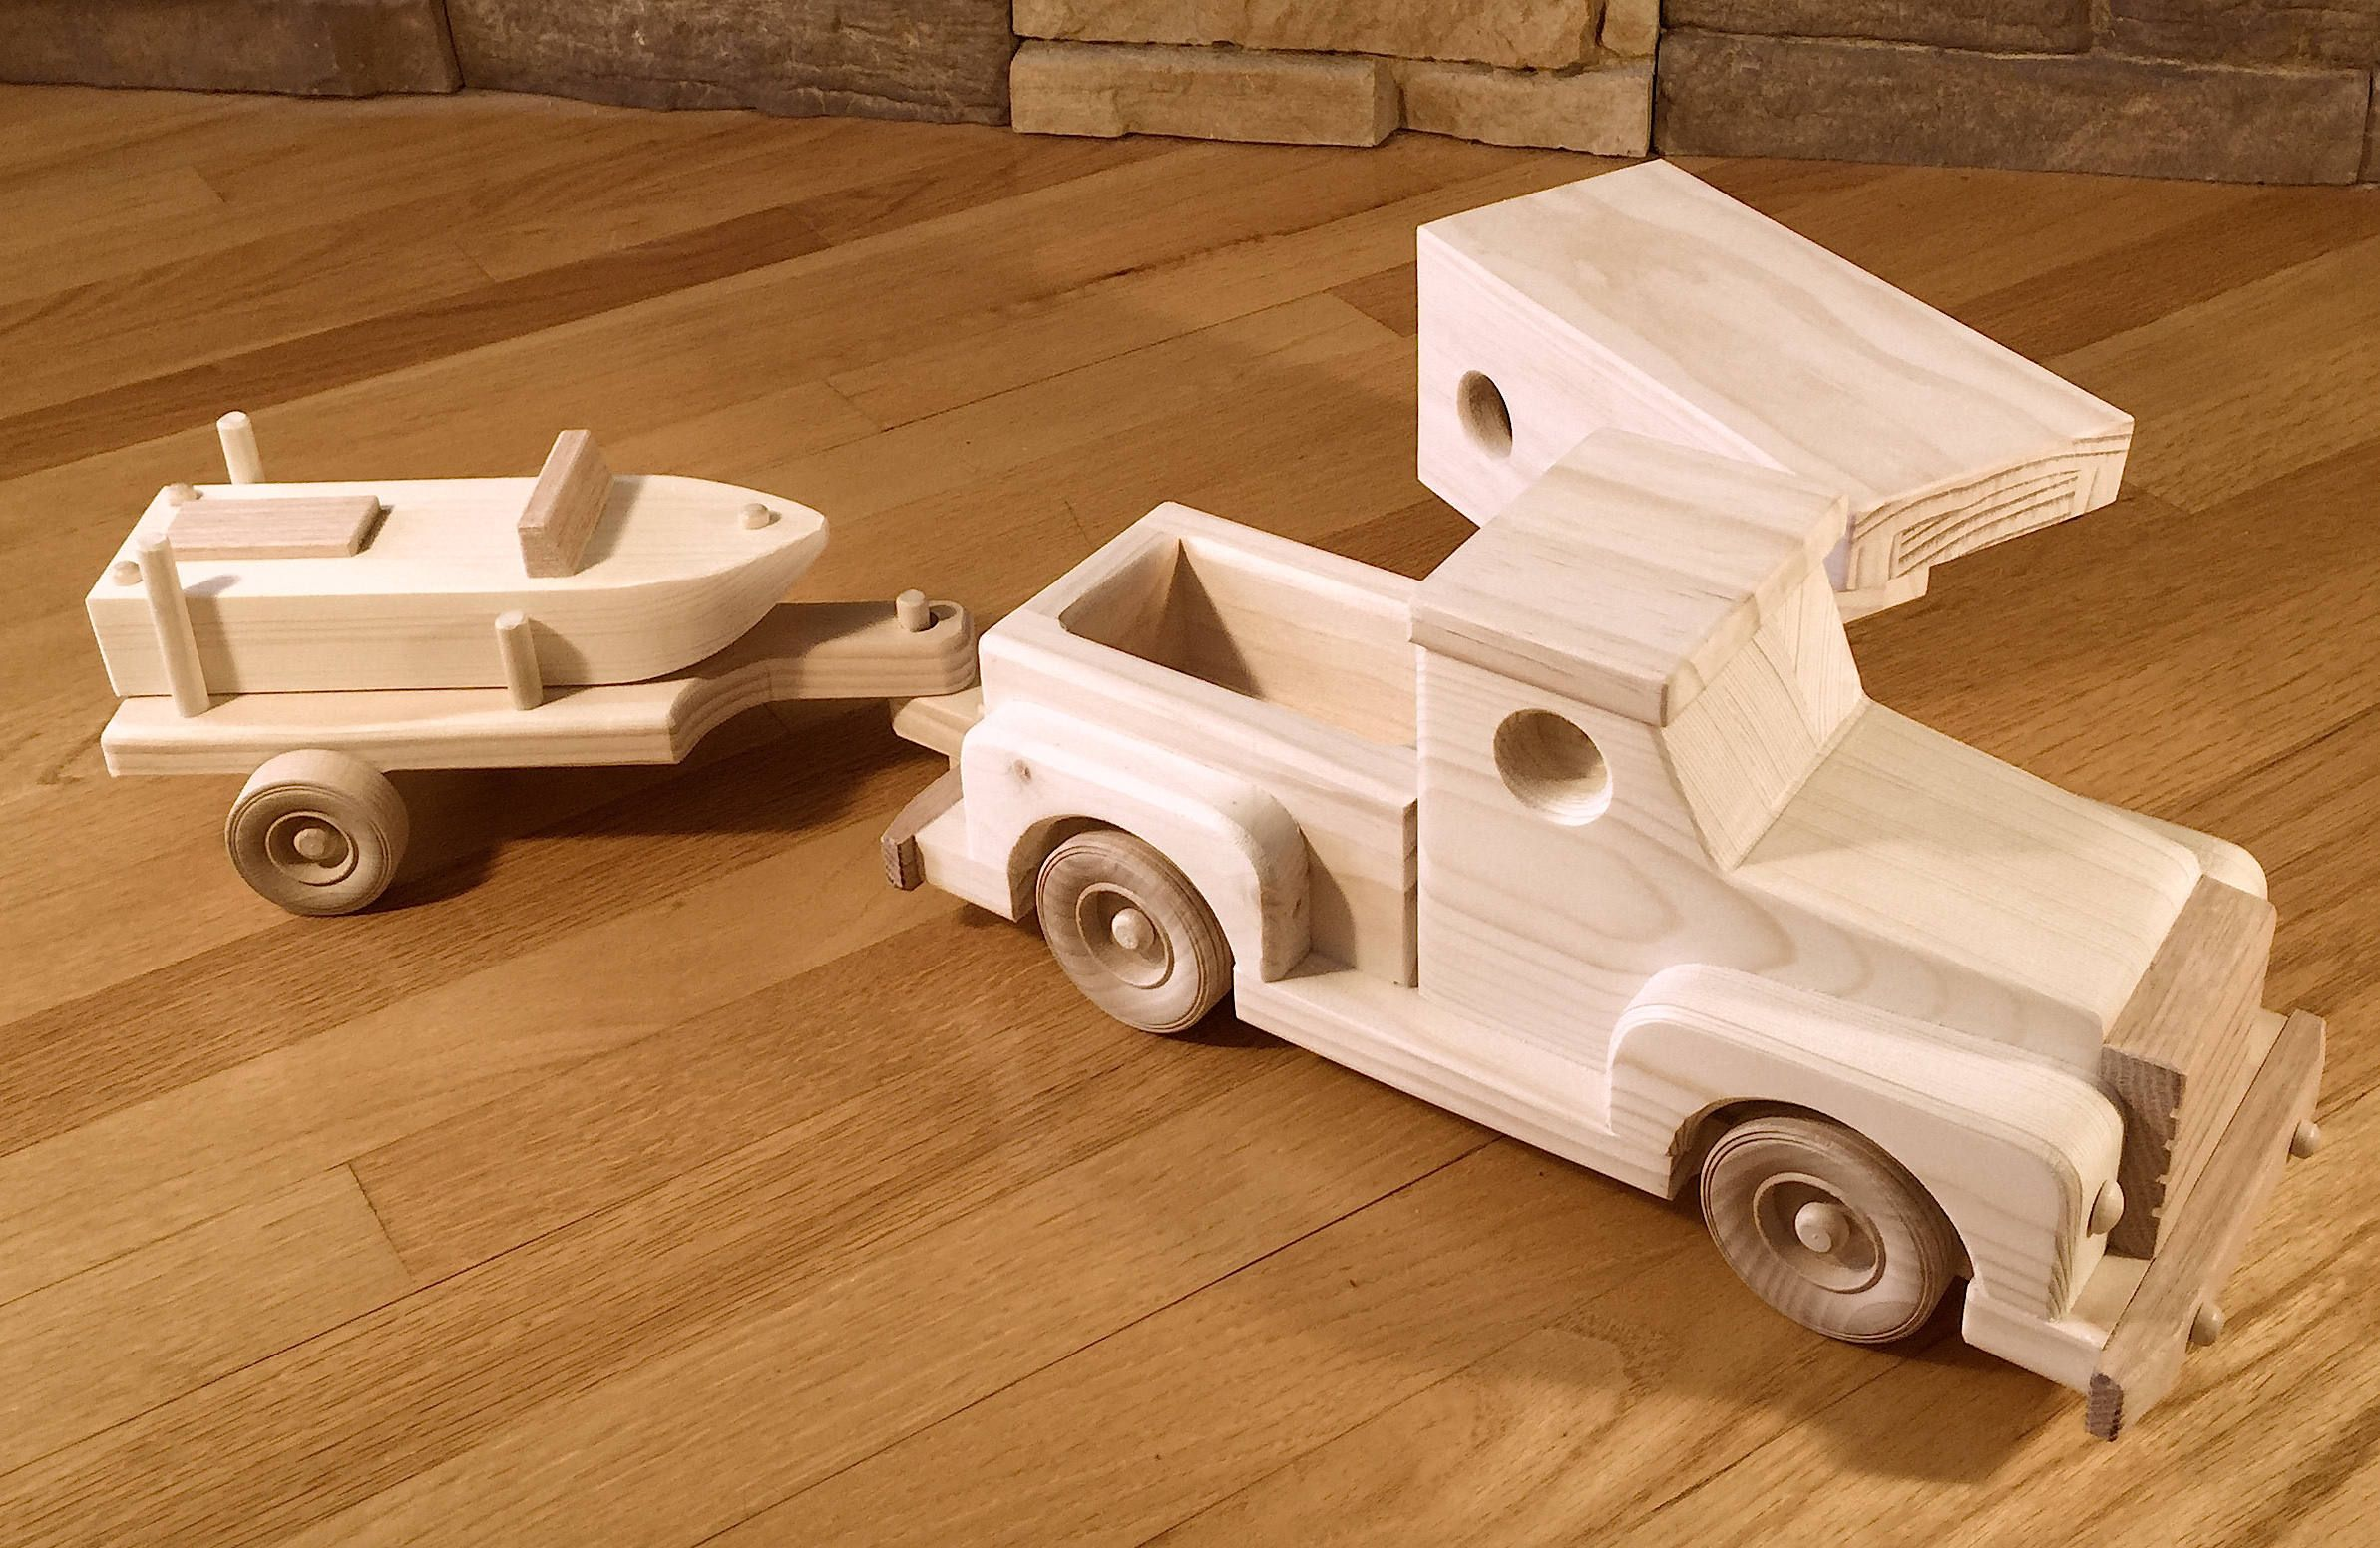 Toys car for child  If your looking for a rugged handmade toy made from natural